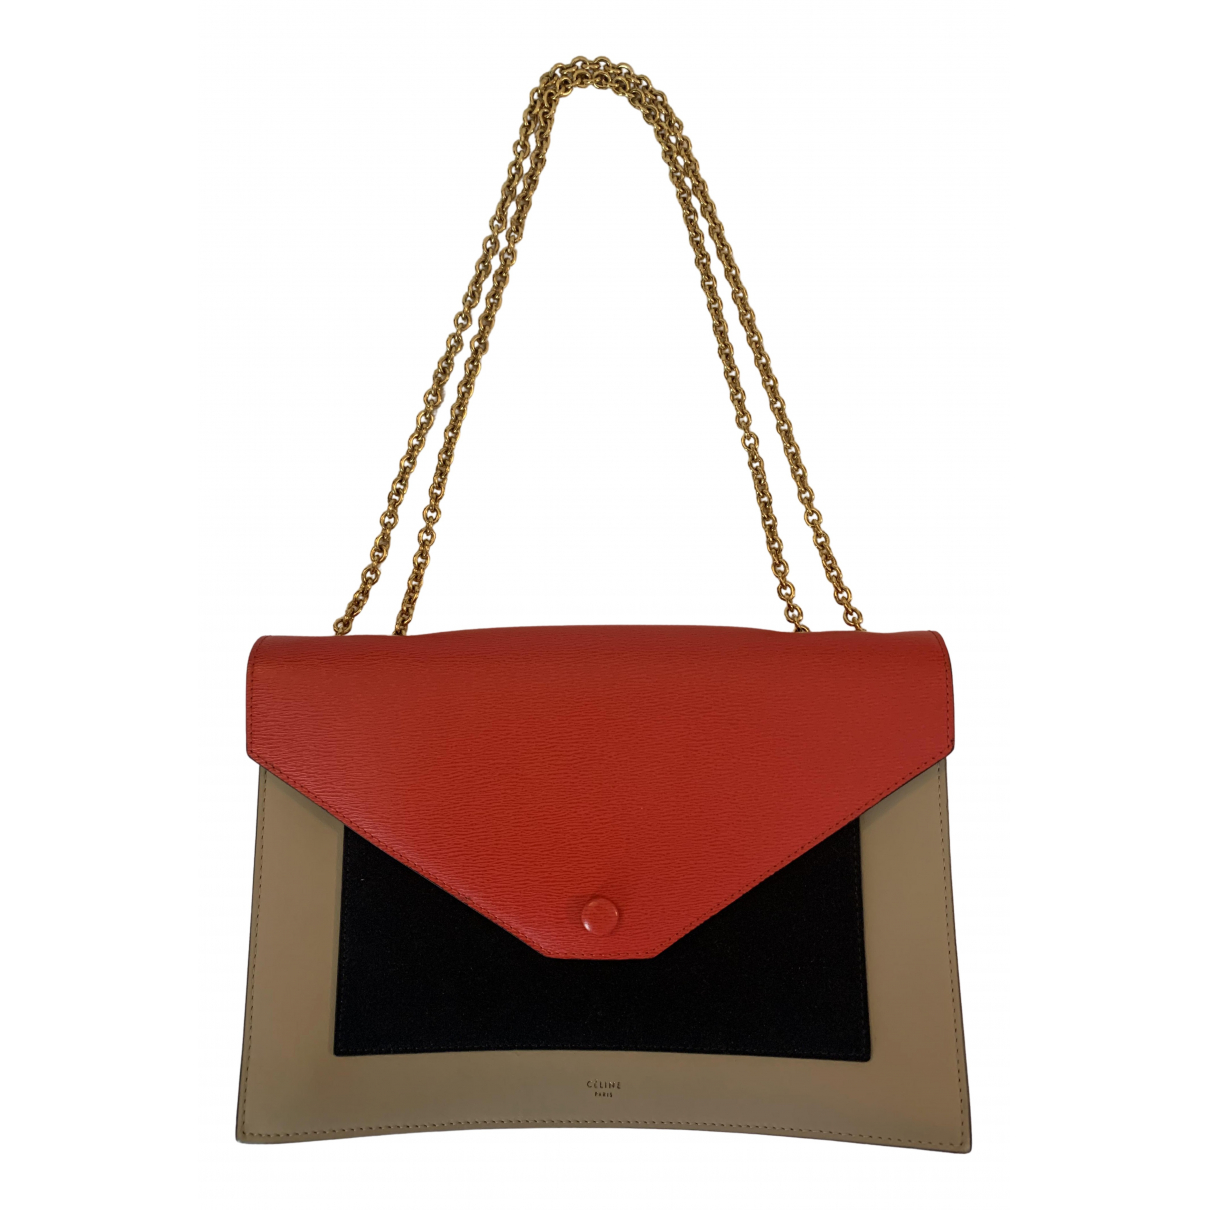 Celine Pocket Multicolour Leather handbag for Women \N